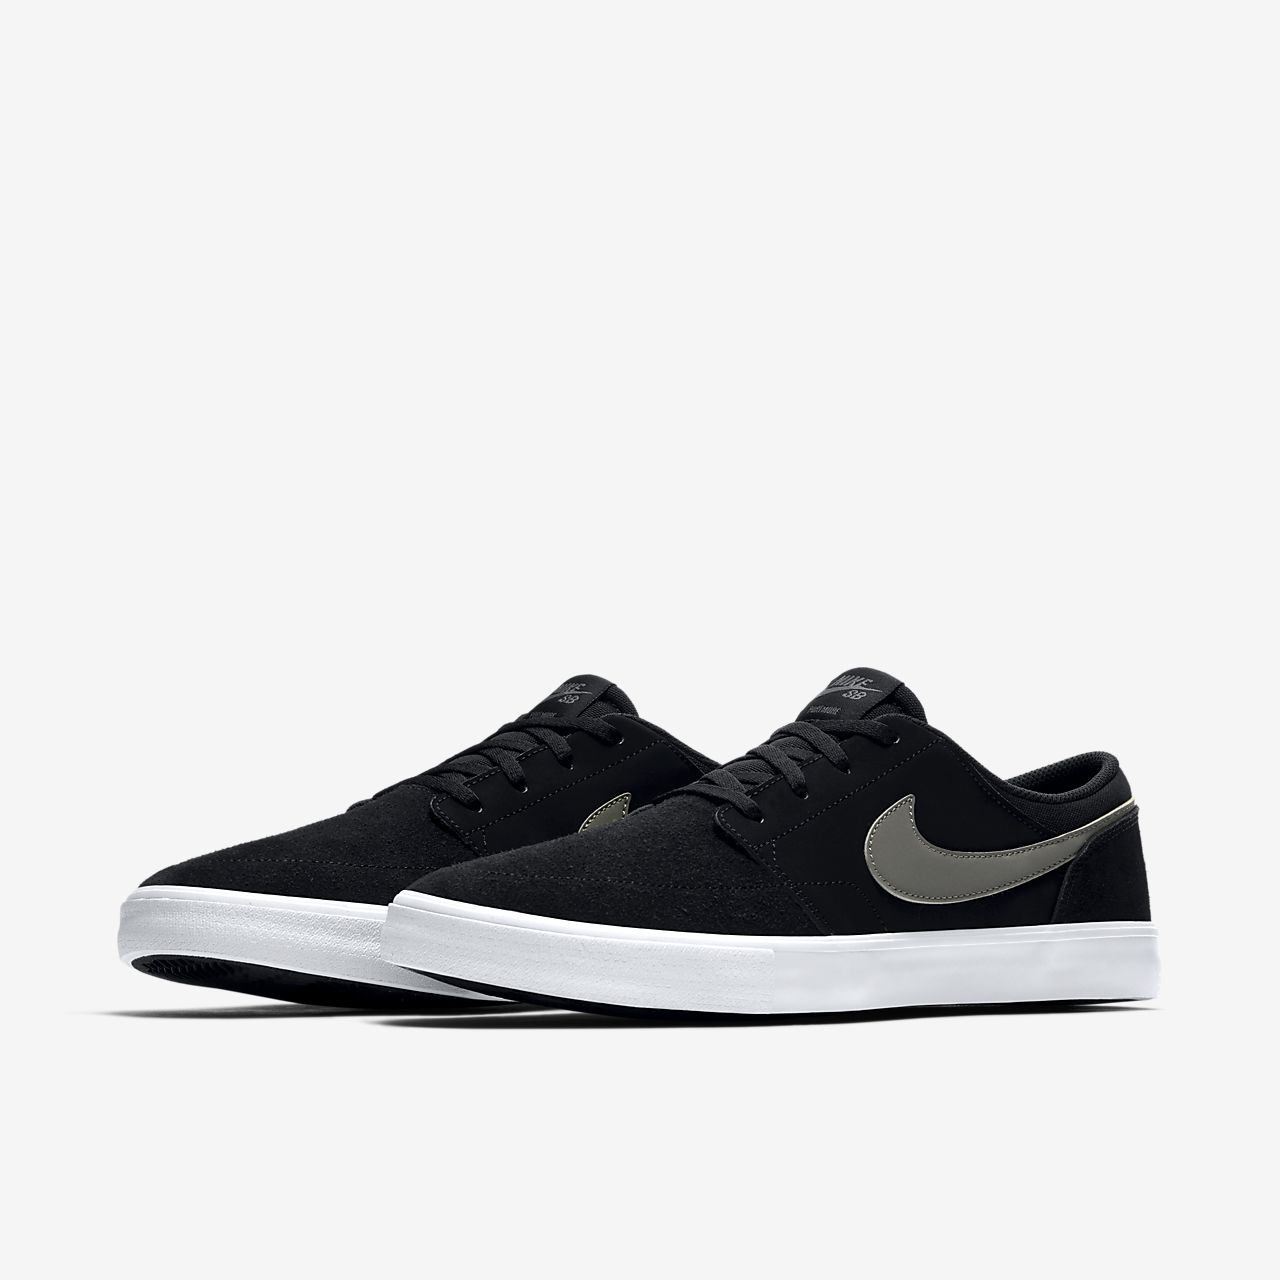 chaussure de skateboard nike sb solarsoft portmore ii pour homme fr. Black Bedroom Furniture Sets. Home Design Ideas